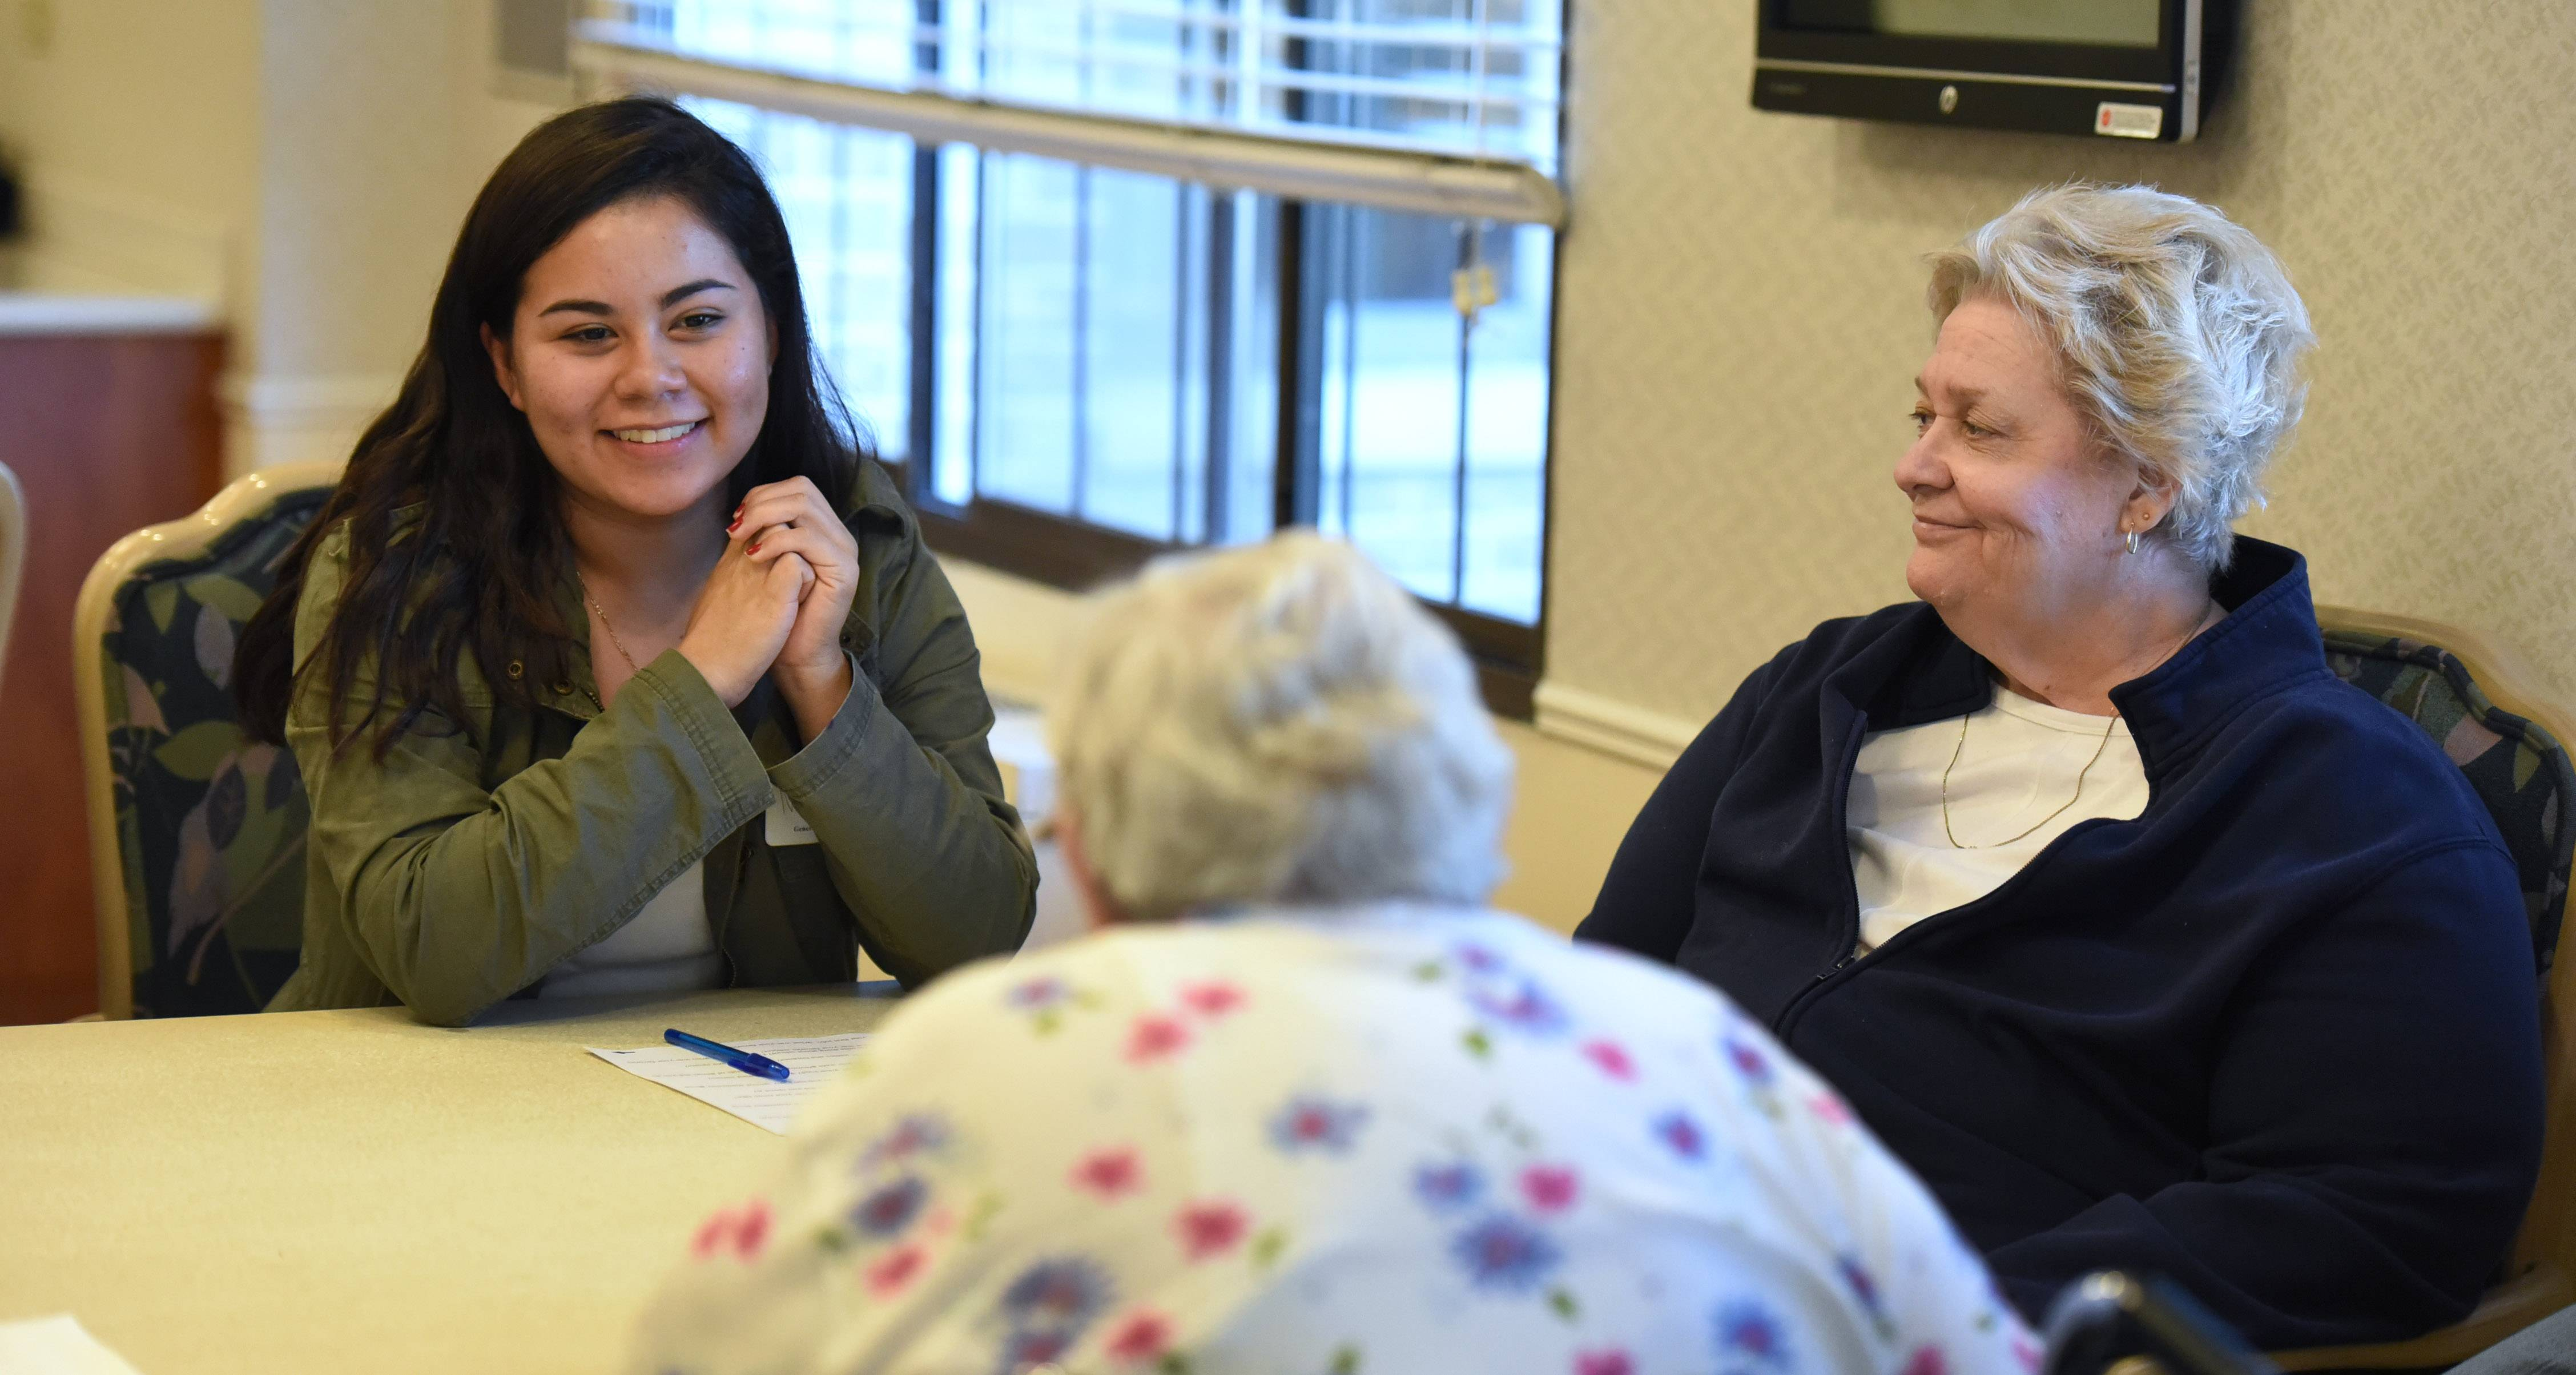 Wheeling High School student Ivette Lopez, left, talks with Lexington Health Care Center residents including Christine Streff, right, during a Generation to Generation program sponsored by Wheeling Township.